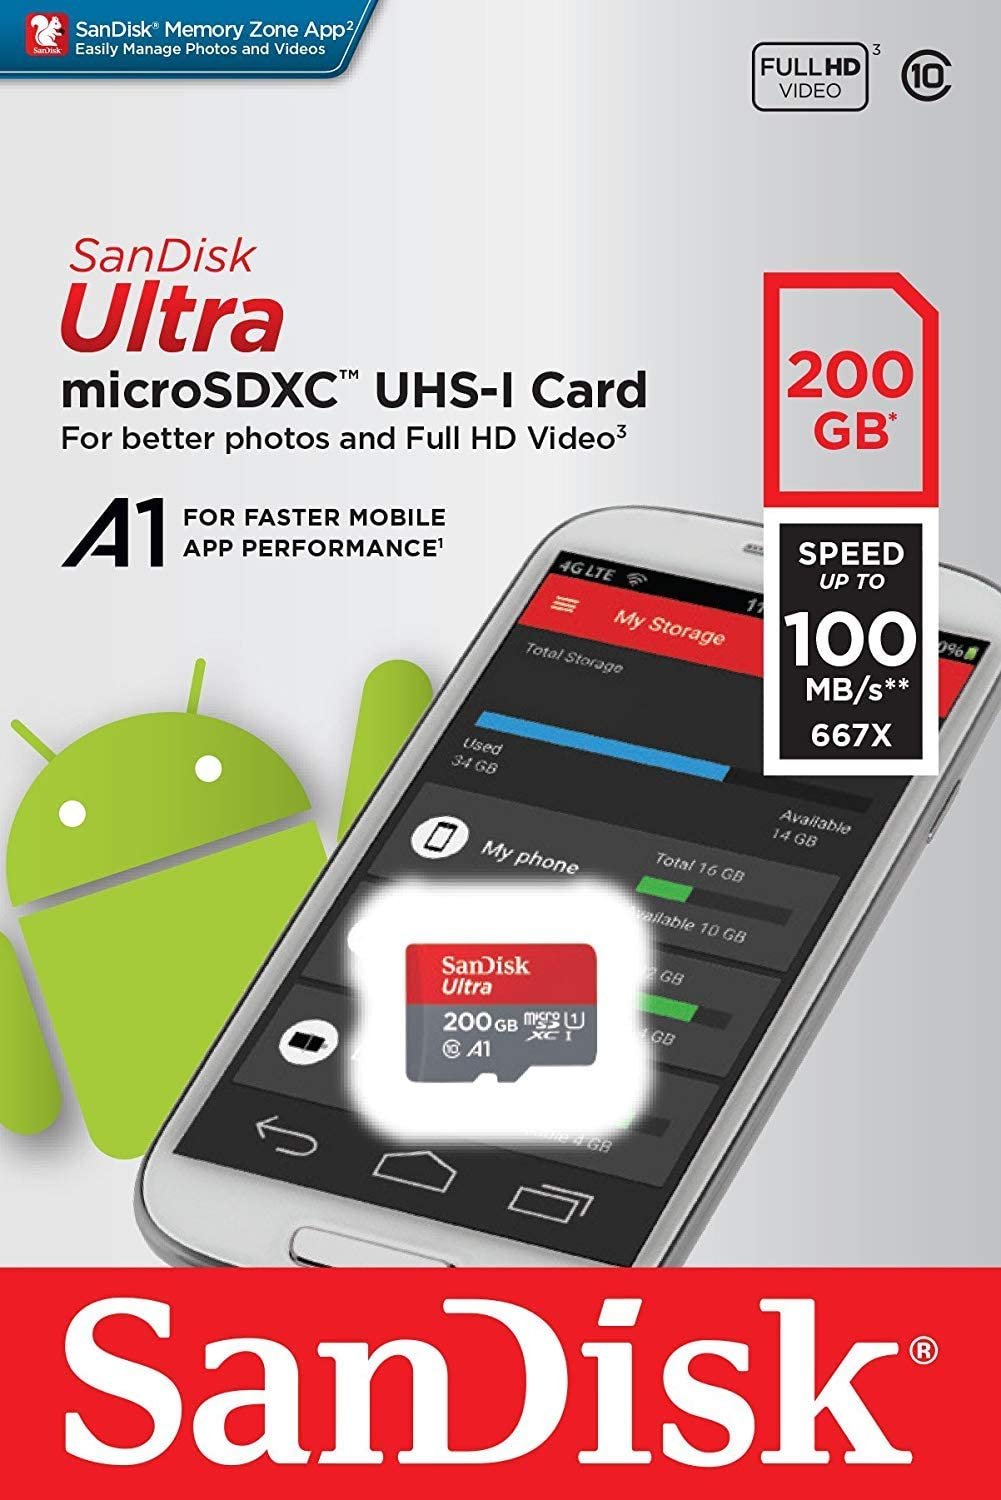 100MBs A1 U1 C10 Works with SanDisk SanDisk Ultra 200GB MicroSDXC Verified for Motorola Moto Z2 Force Edition by SanFlash